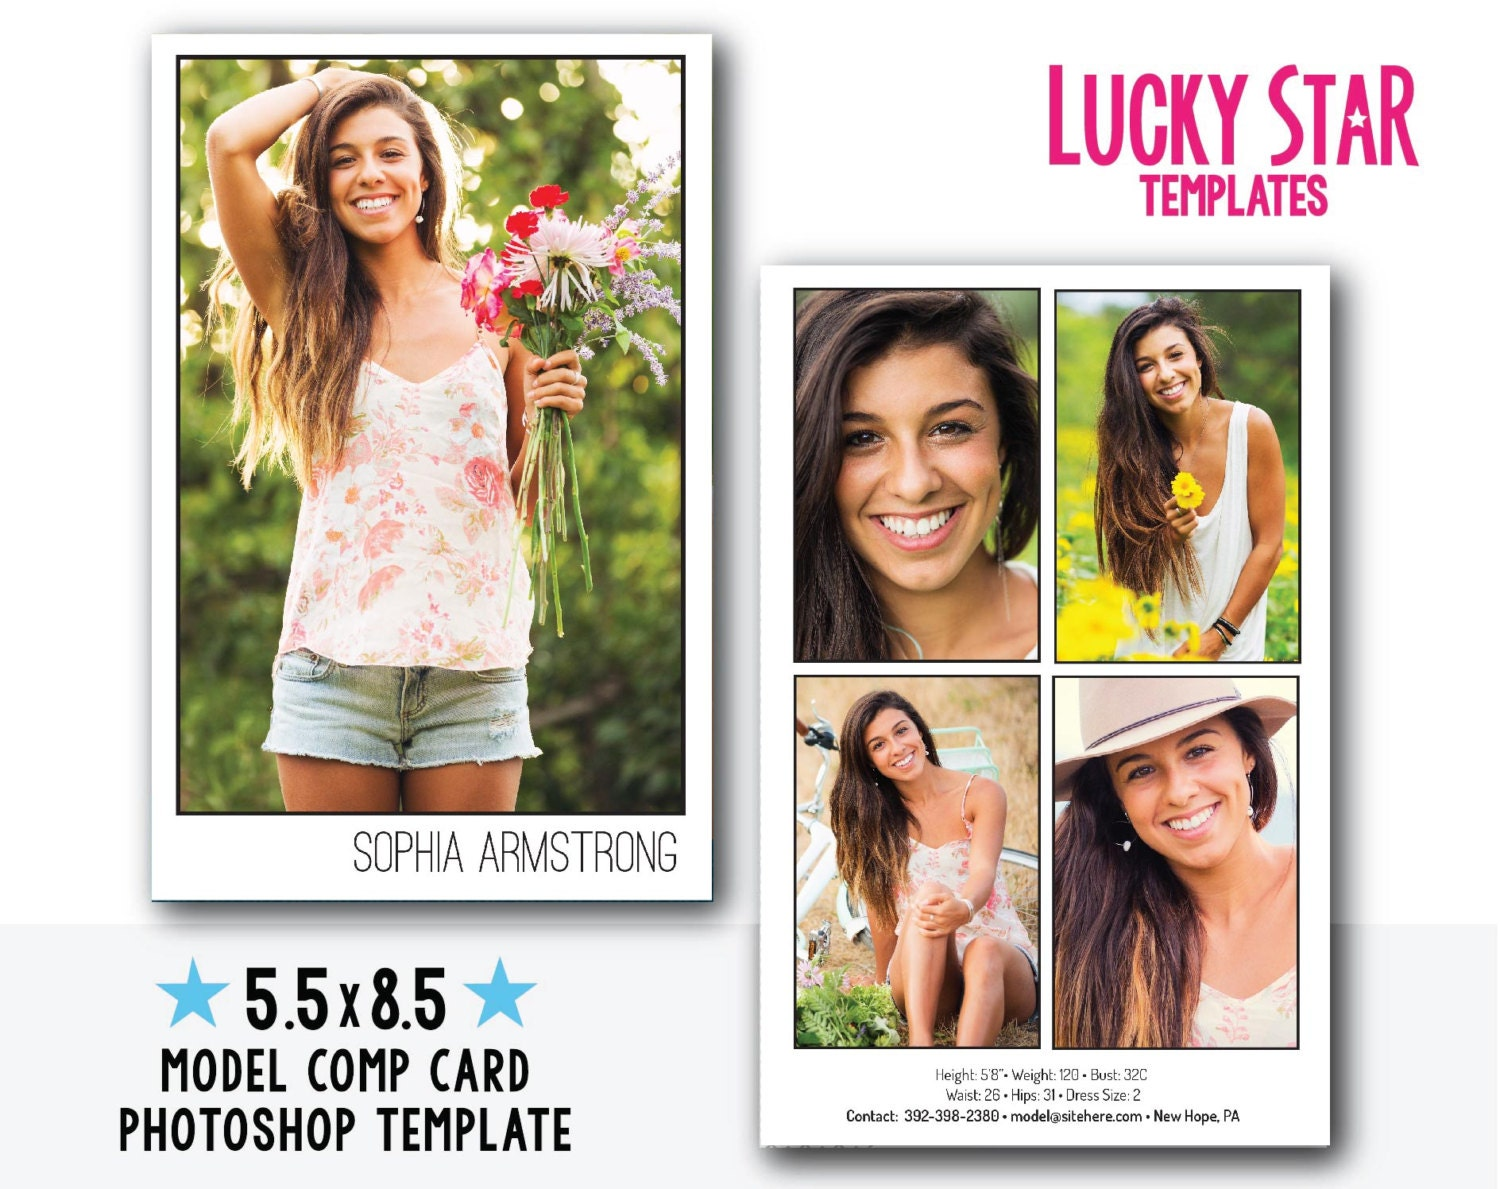 Customizable digital model comp card power portraits for Free model comp card template psd